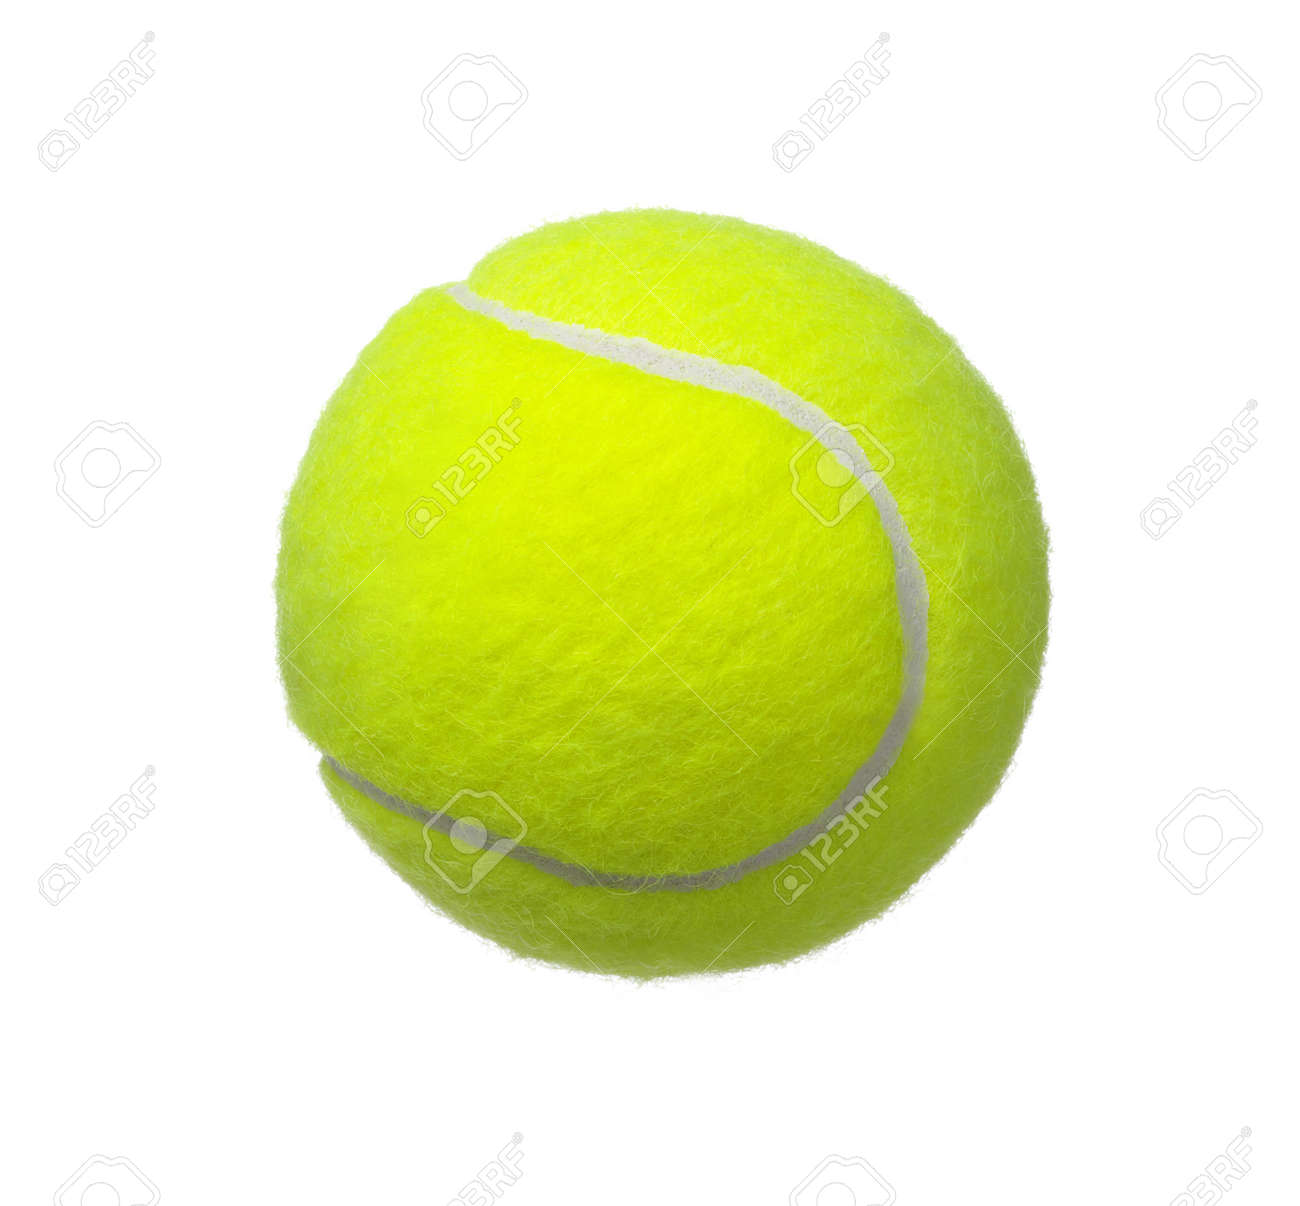 tennis ball isolated on white background Banque d'images - 38870607